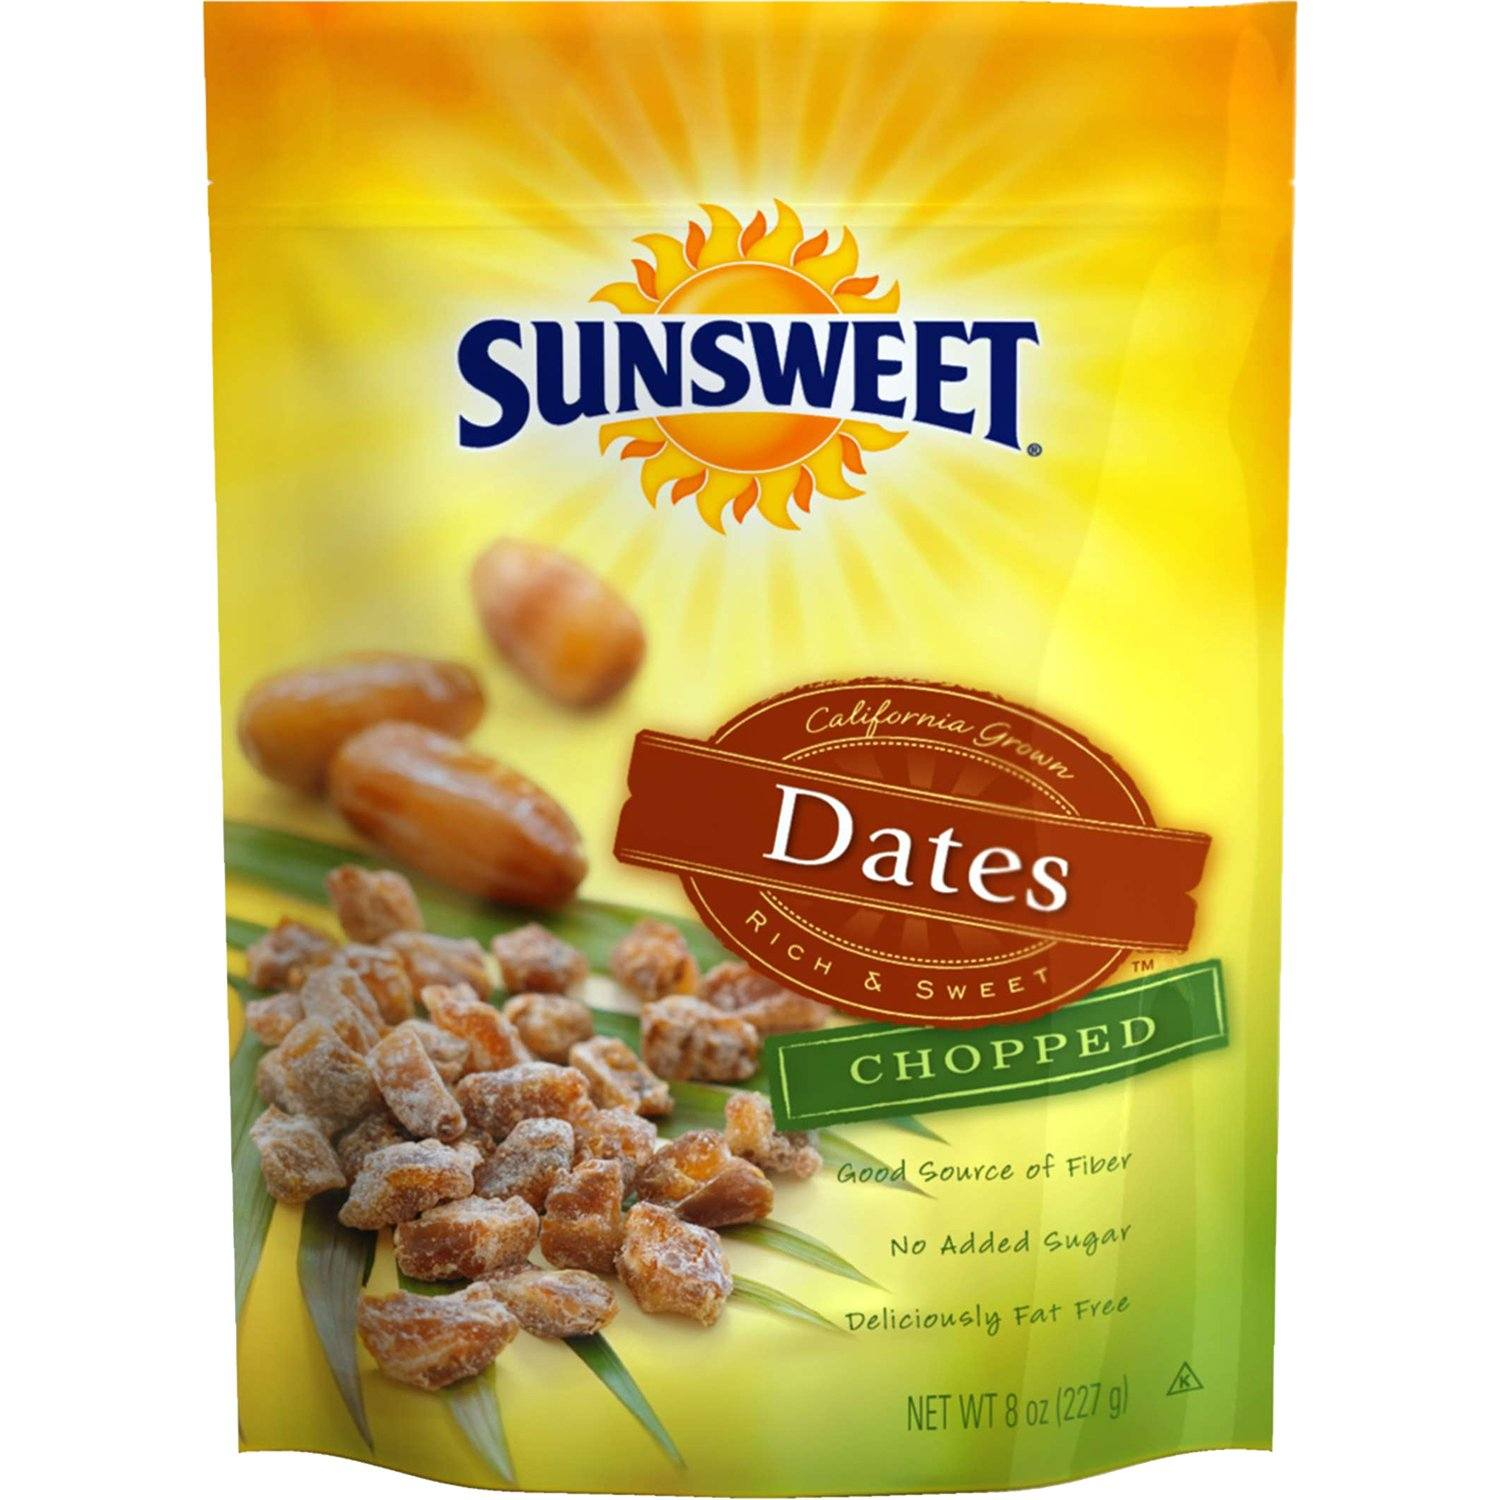 Sunsweet Dried Dates Sunsweet Chopped 8 Ounce Pouch